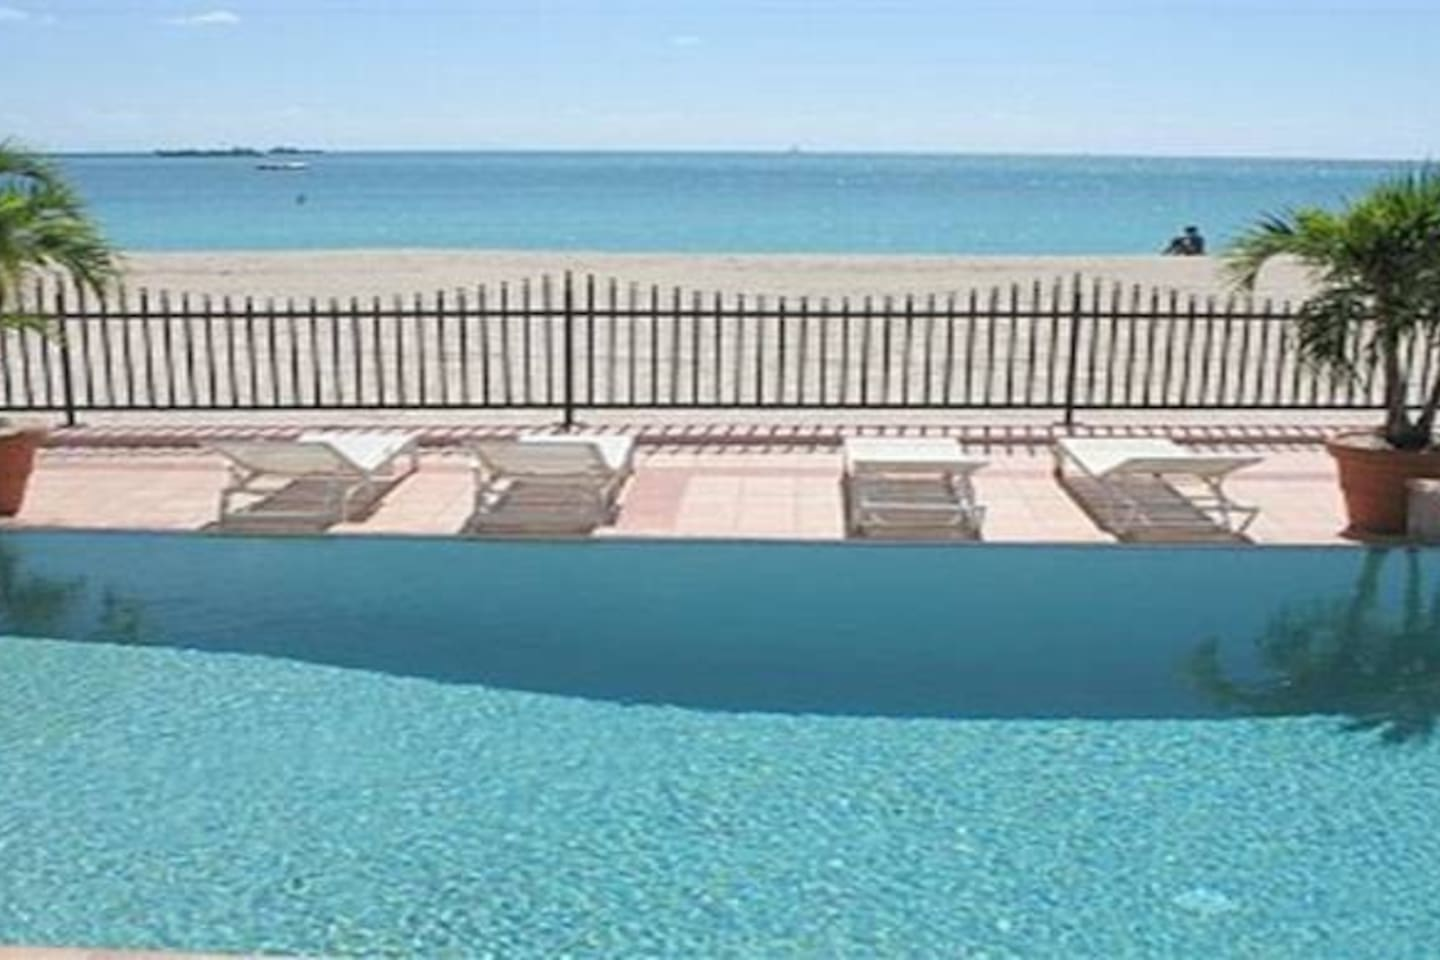 This is your view while lounging in the pool! Once outside the fence you are 50 ft. to the Ocean!